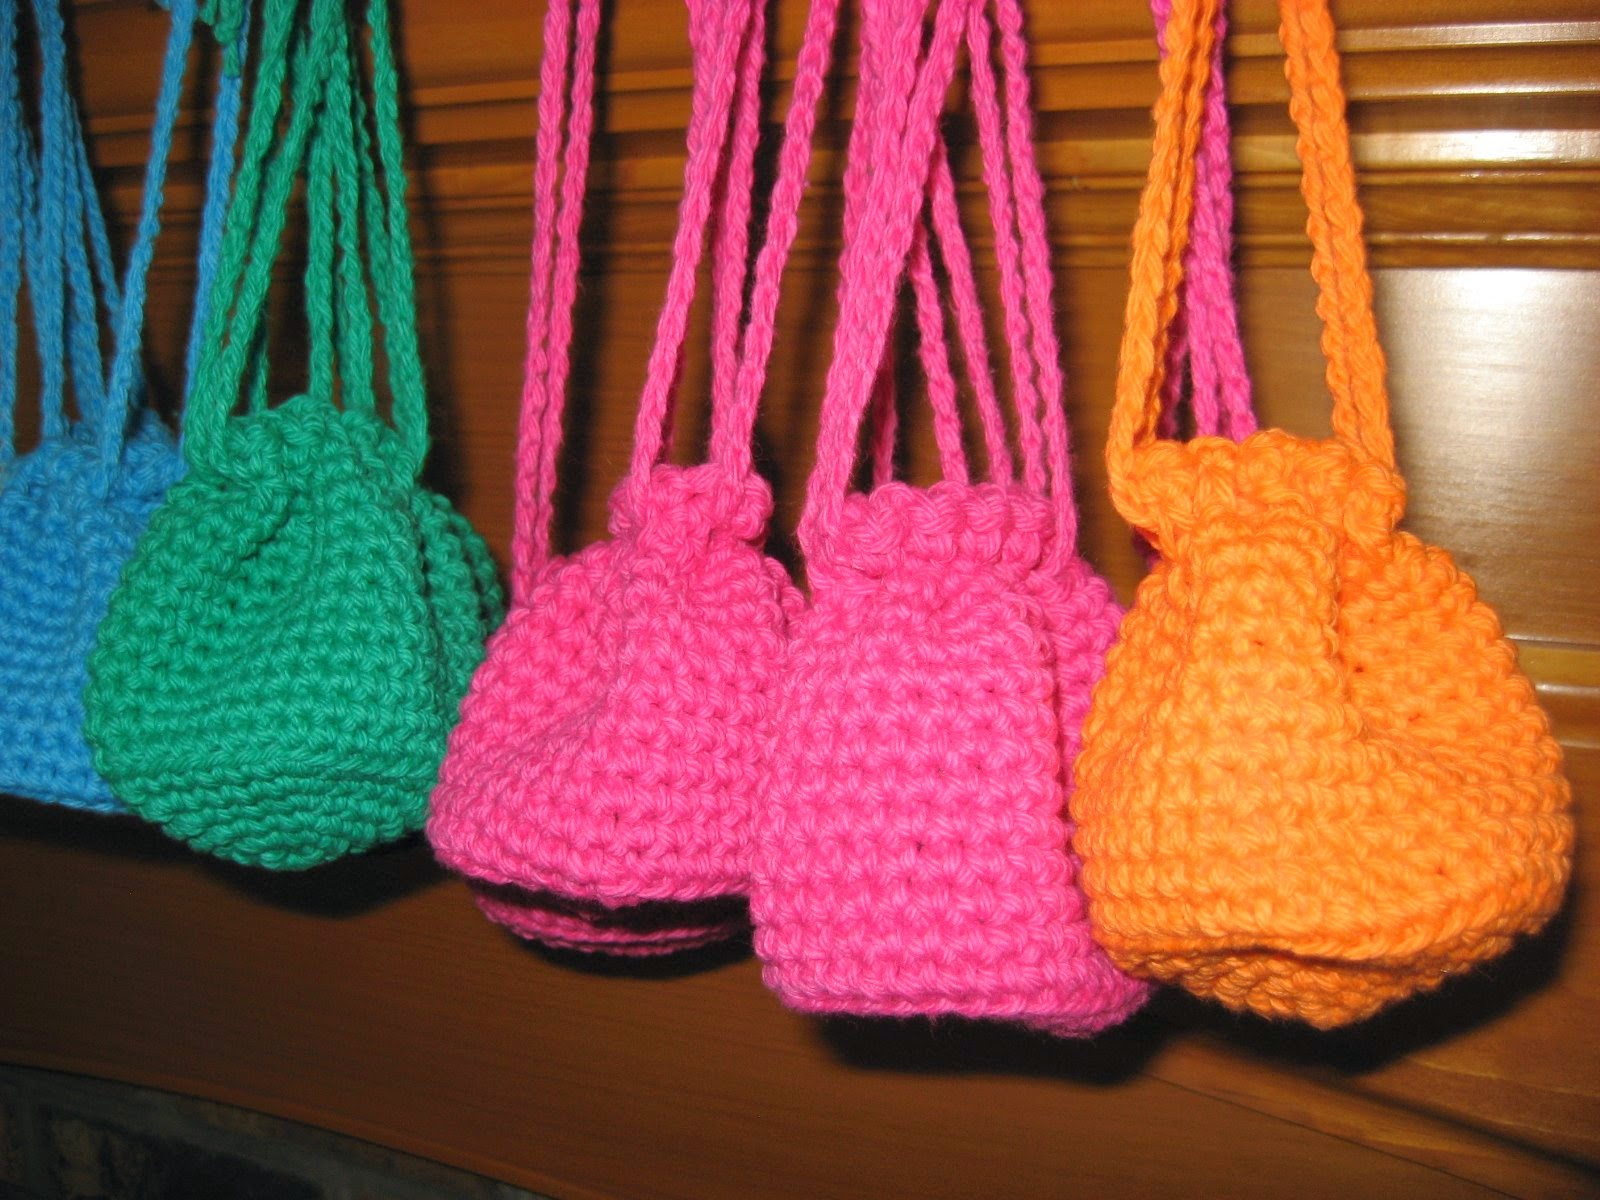 Hooked on Needles: Summer Crochet Projects